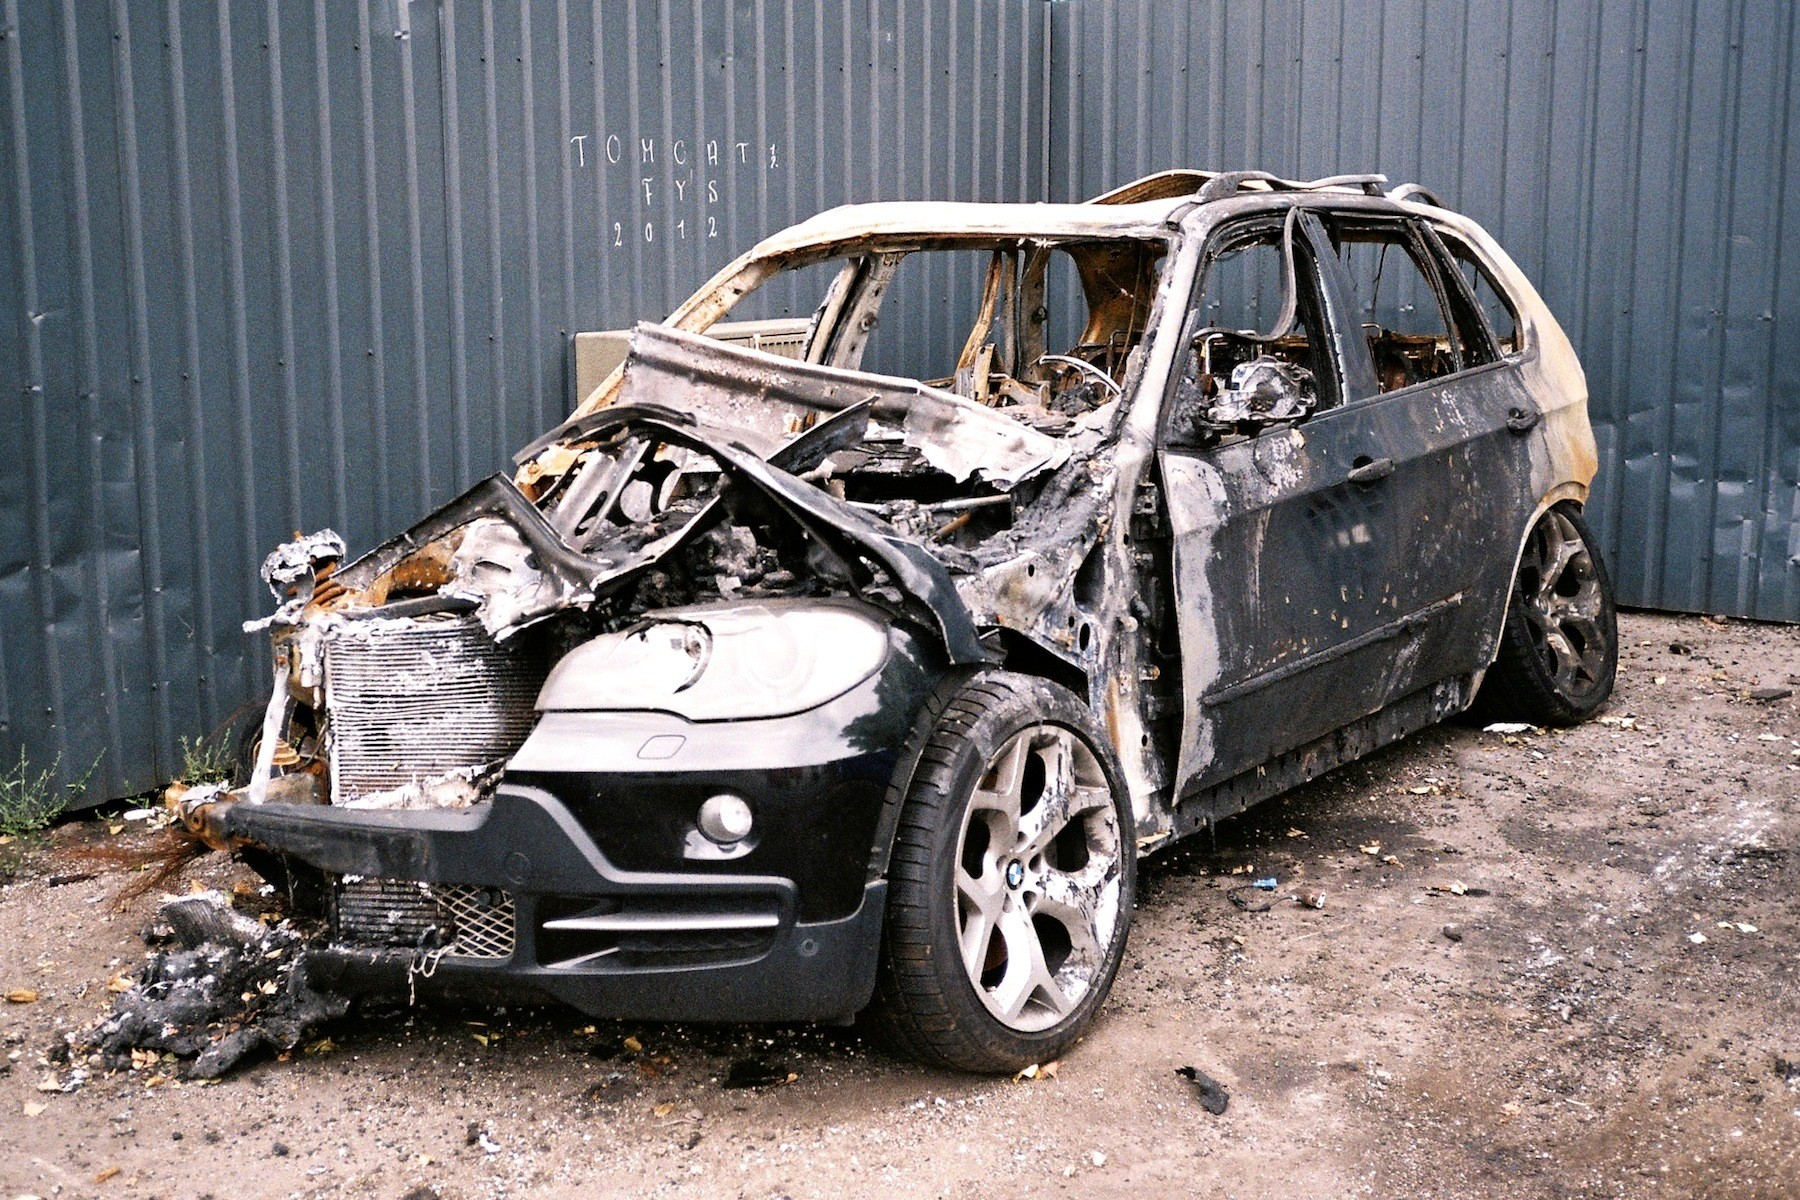 Wrecked Cars In Copenhagen besides Trust further Repton 3 further Pulling Remote Git Repository And further . on thing